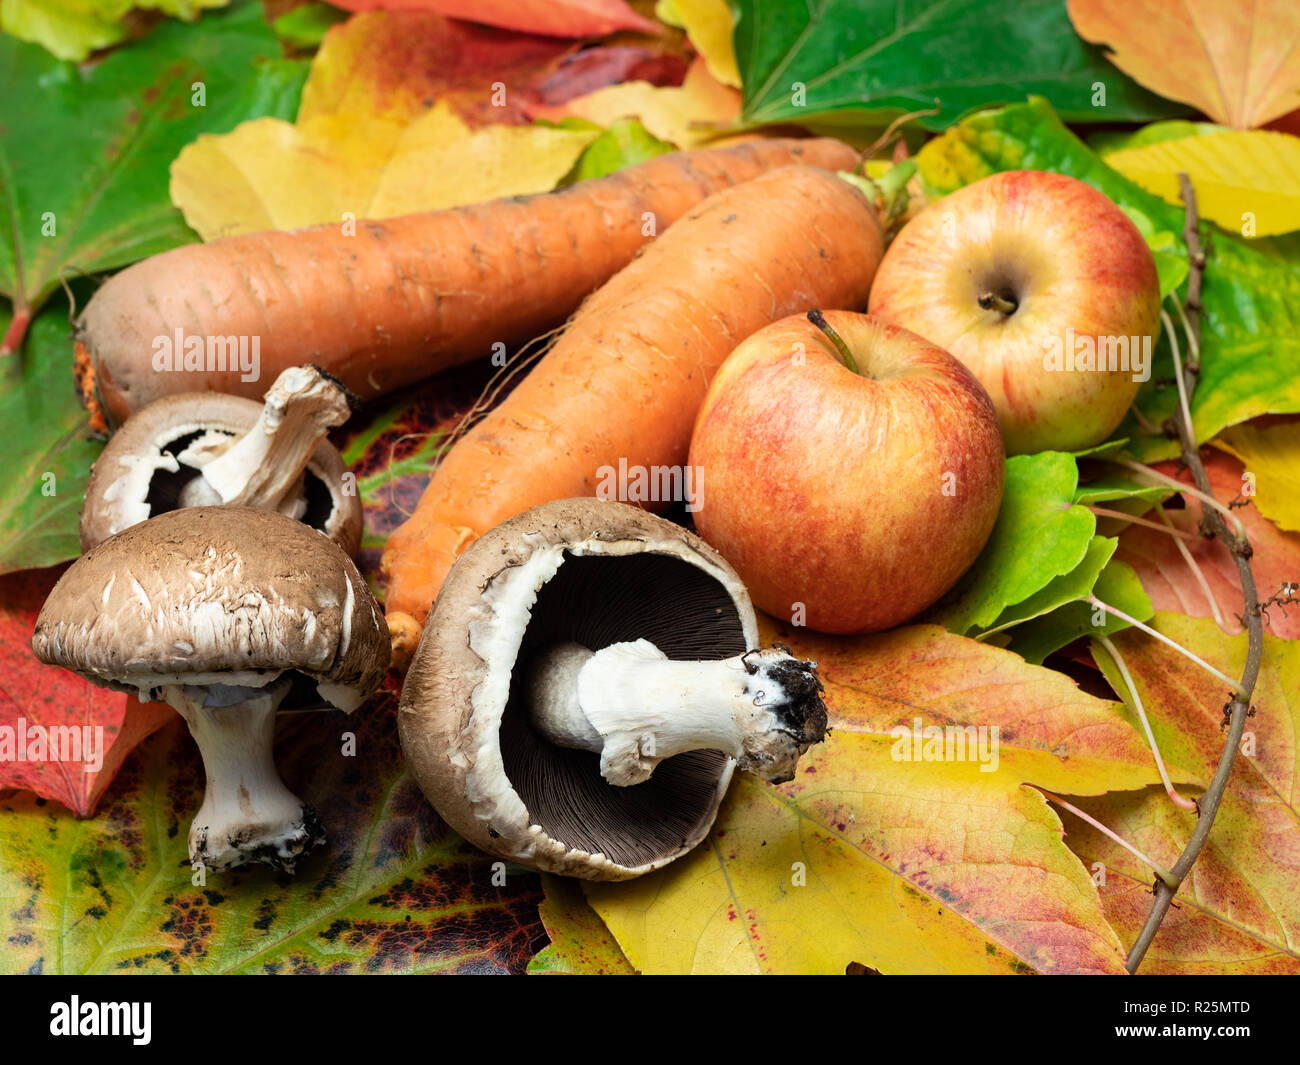 Seasonal vegetables placed on coloured autumn leaves. There are mushrooms, apples and carrots. Stock Photo